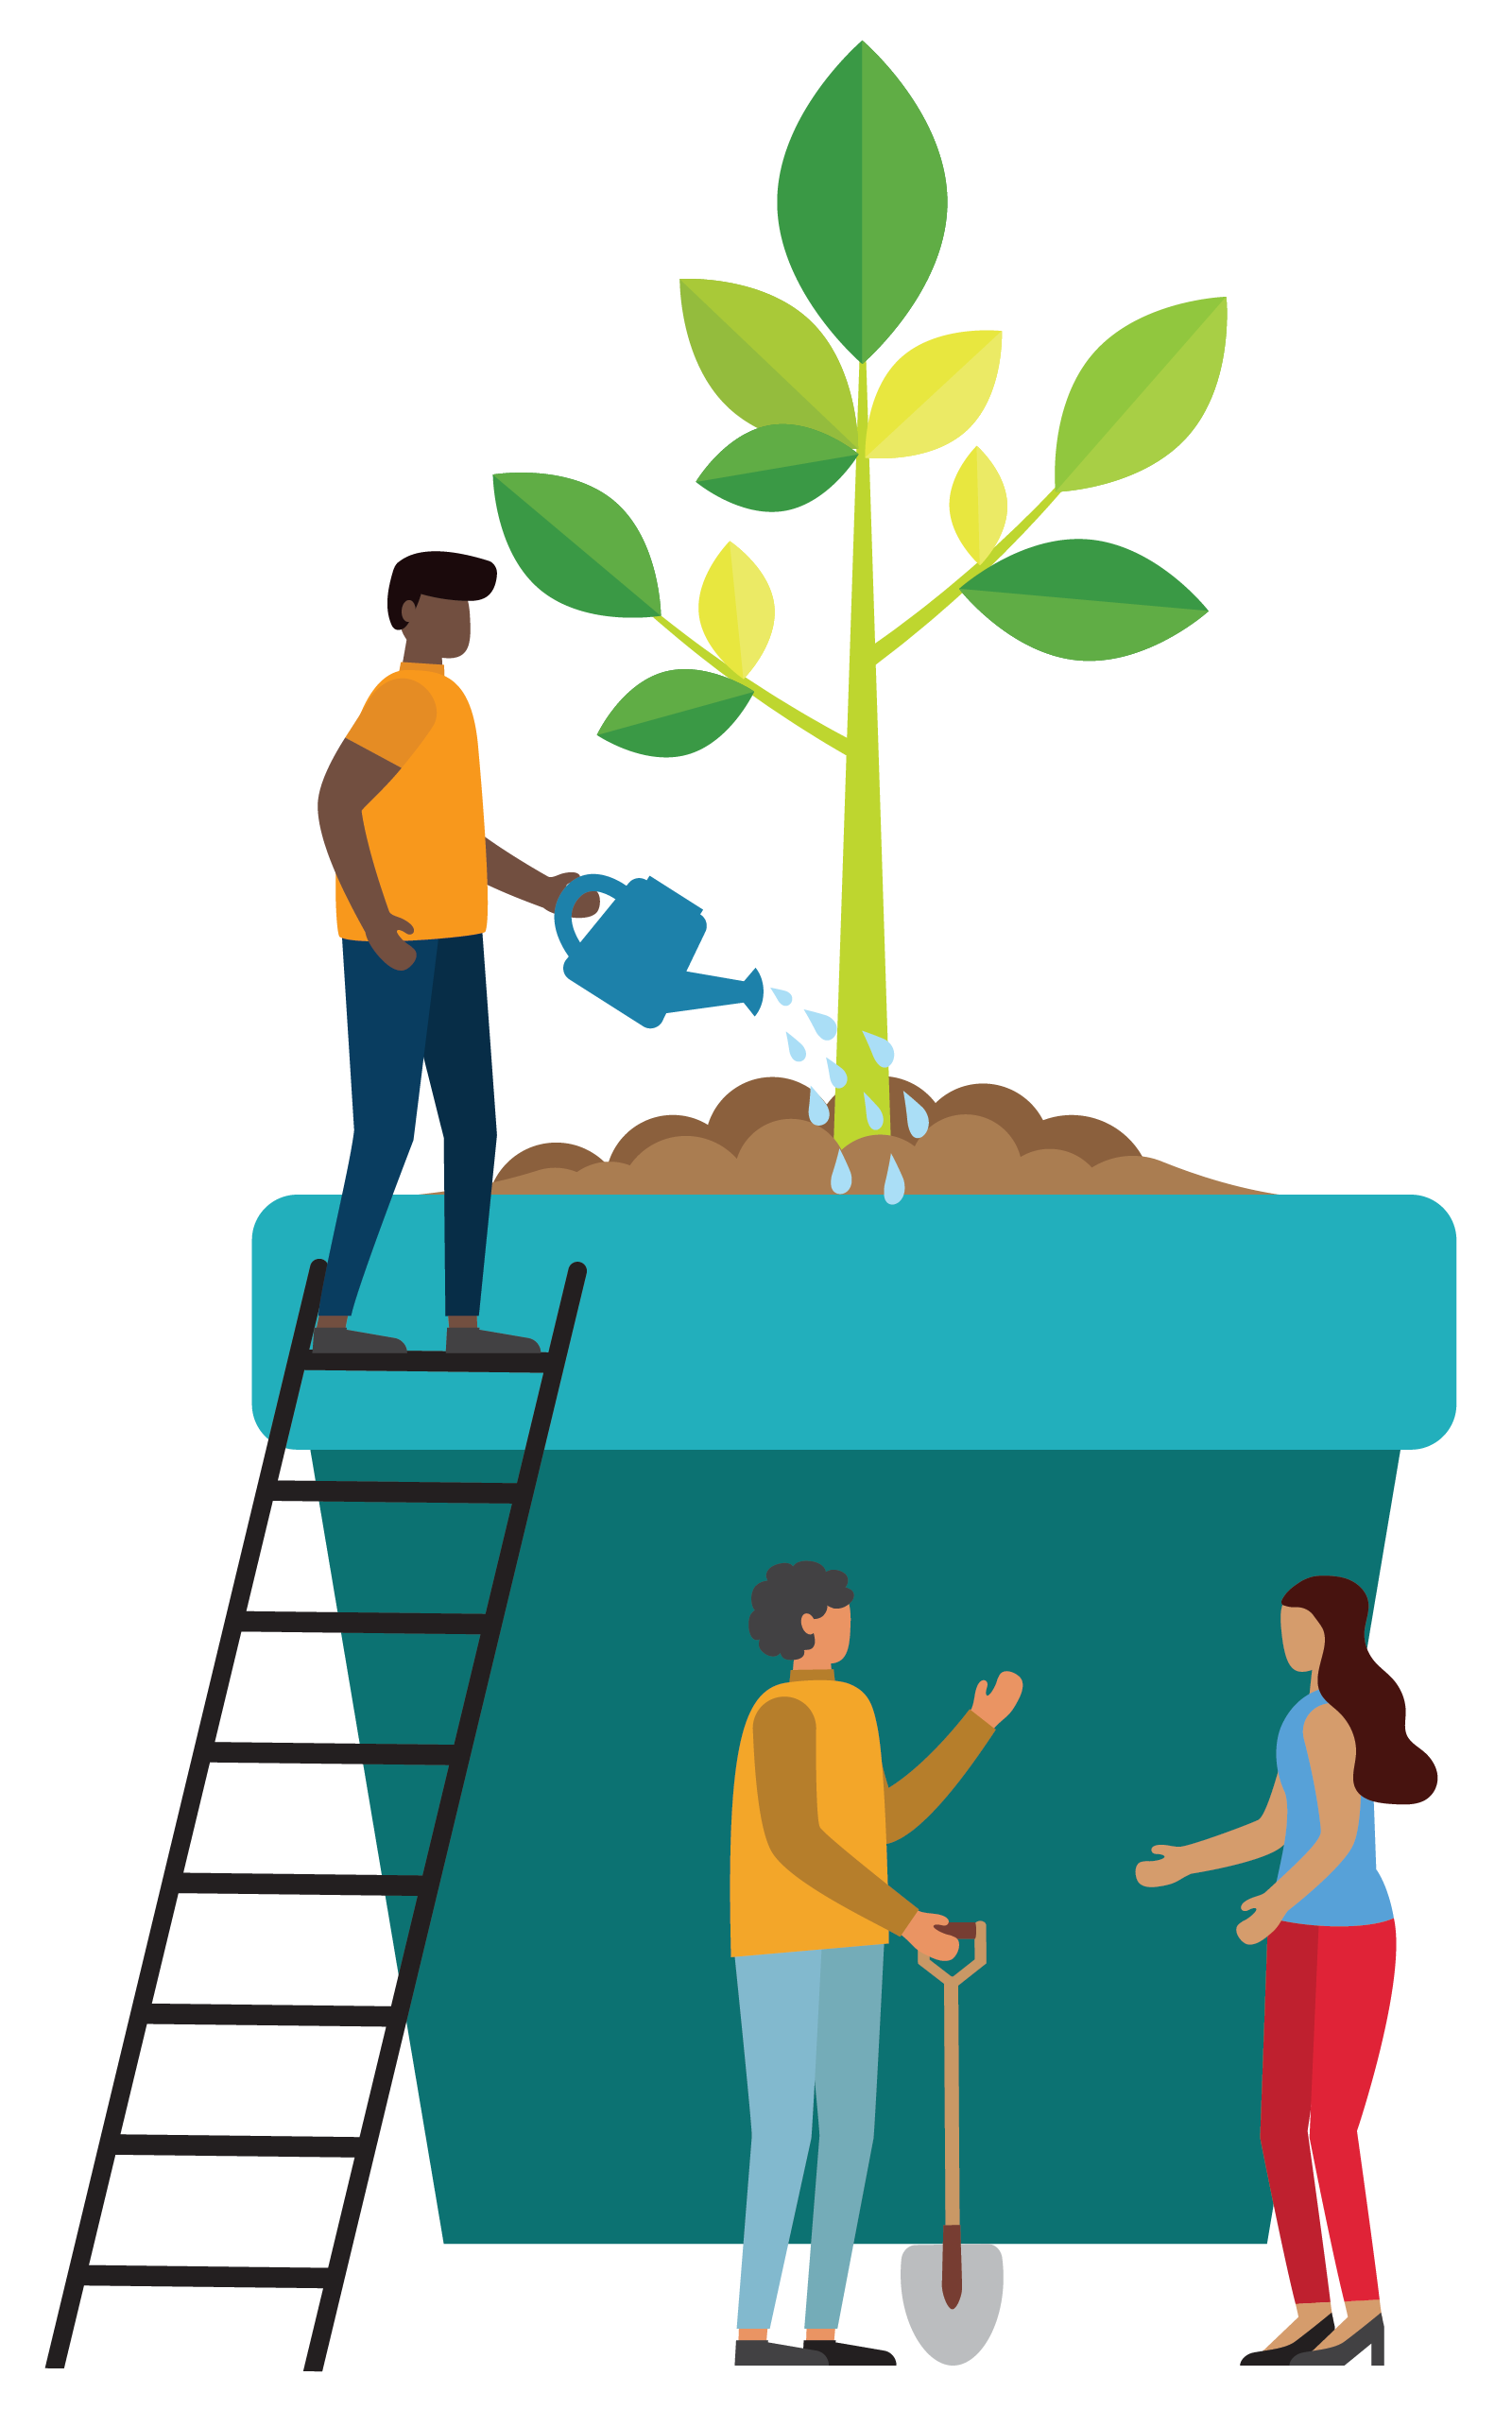 Virginia SBDC Capital Region | Community watering plant to promote growth